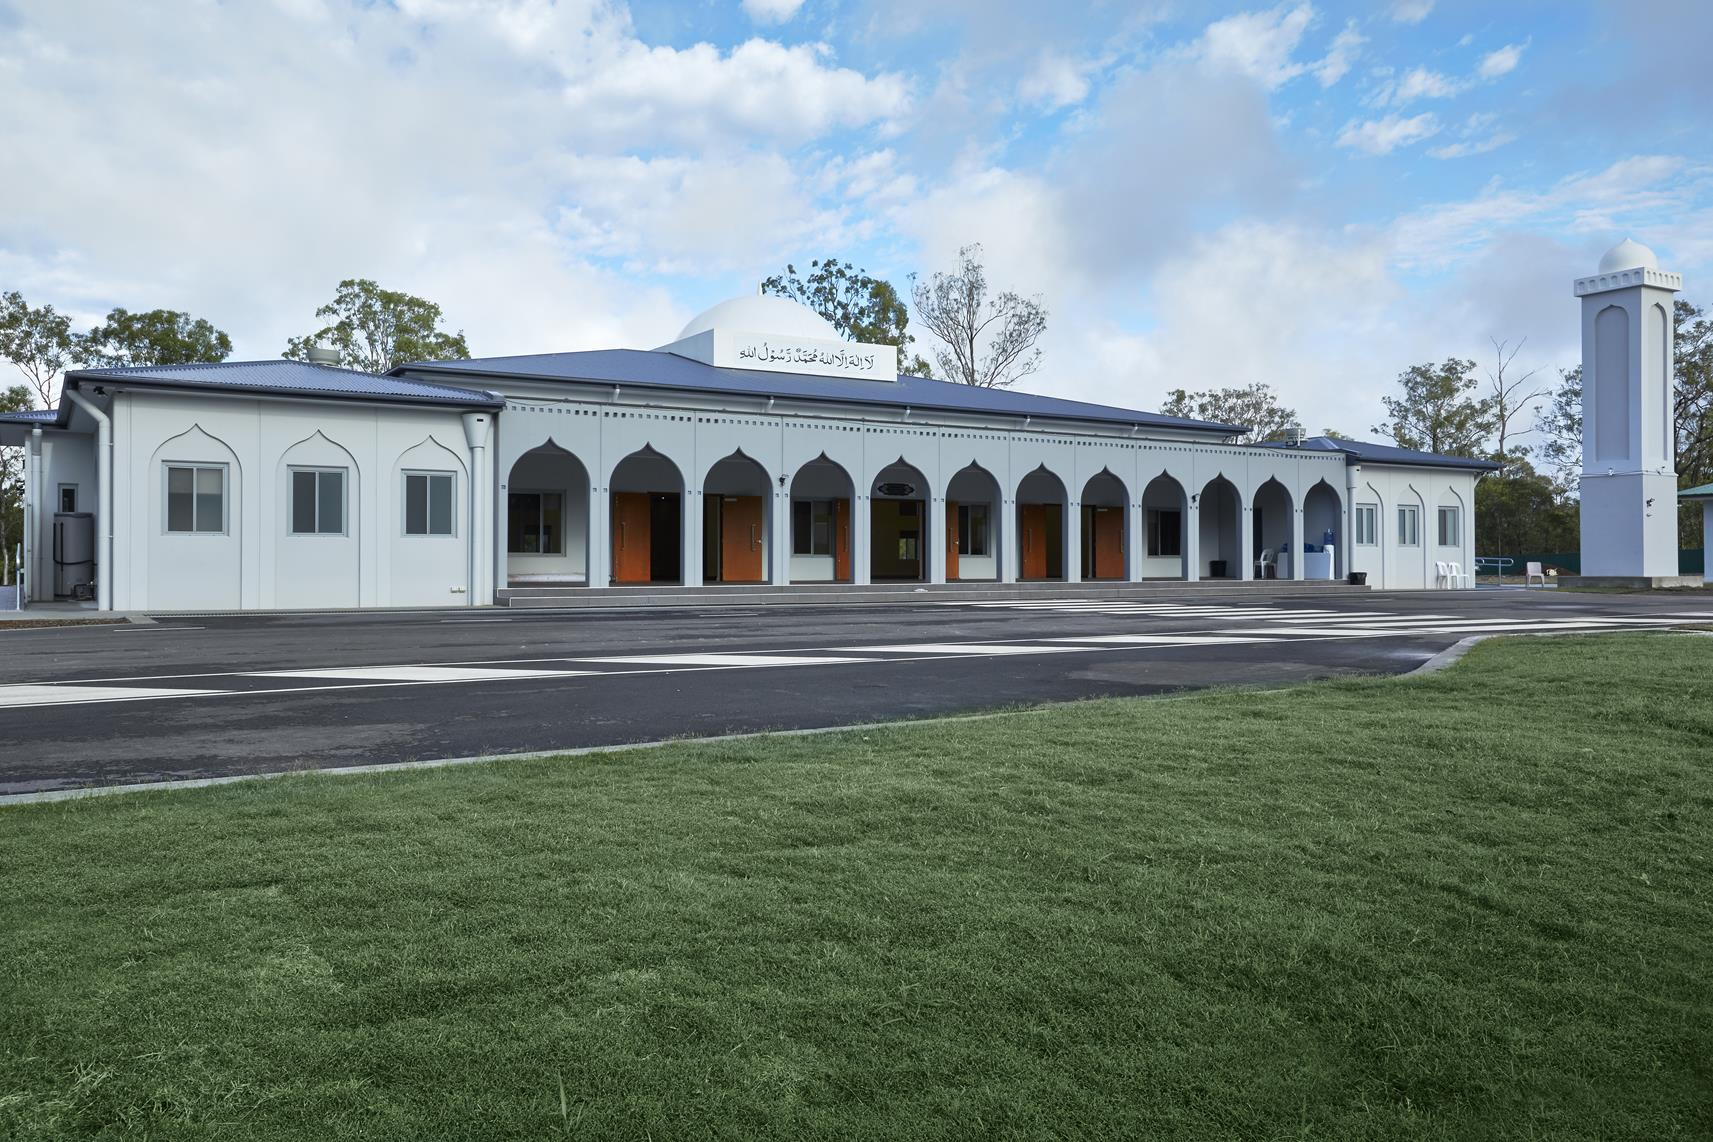 Mosque_stockleigh (1)